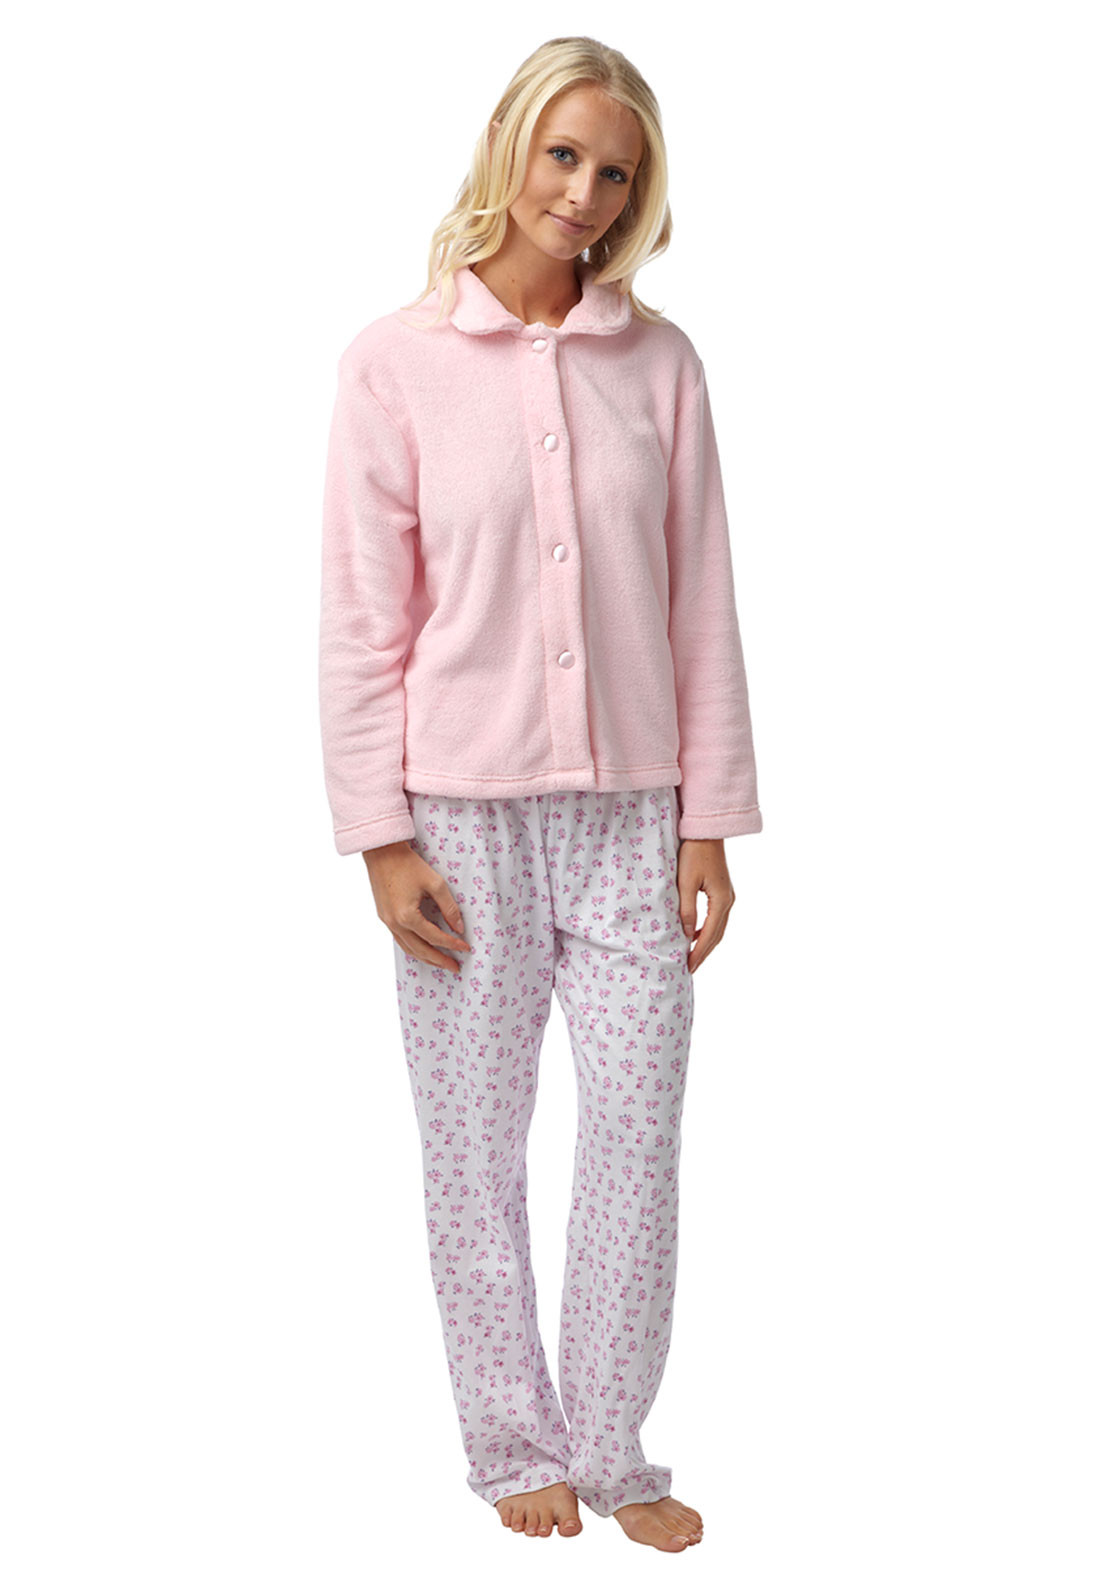 Marlon Terry Fleece Bed Jacket, Pale Pink